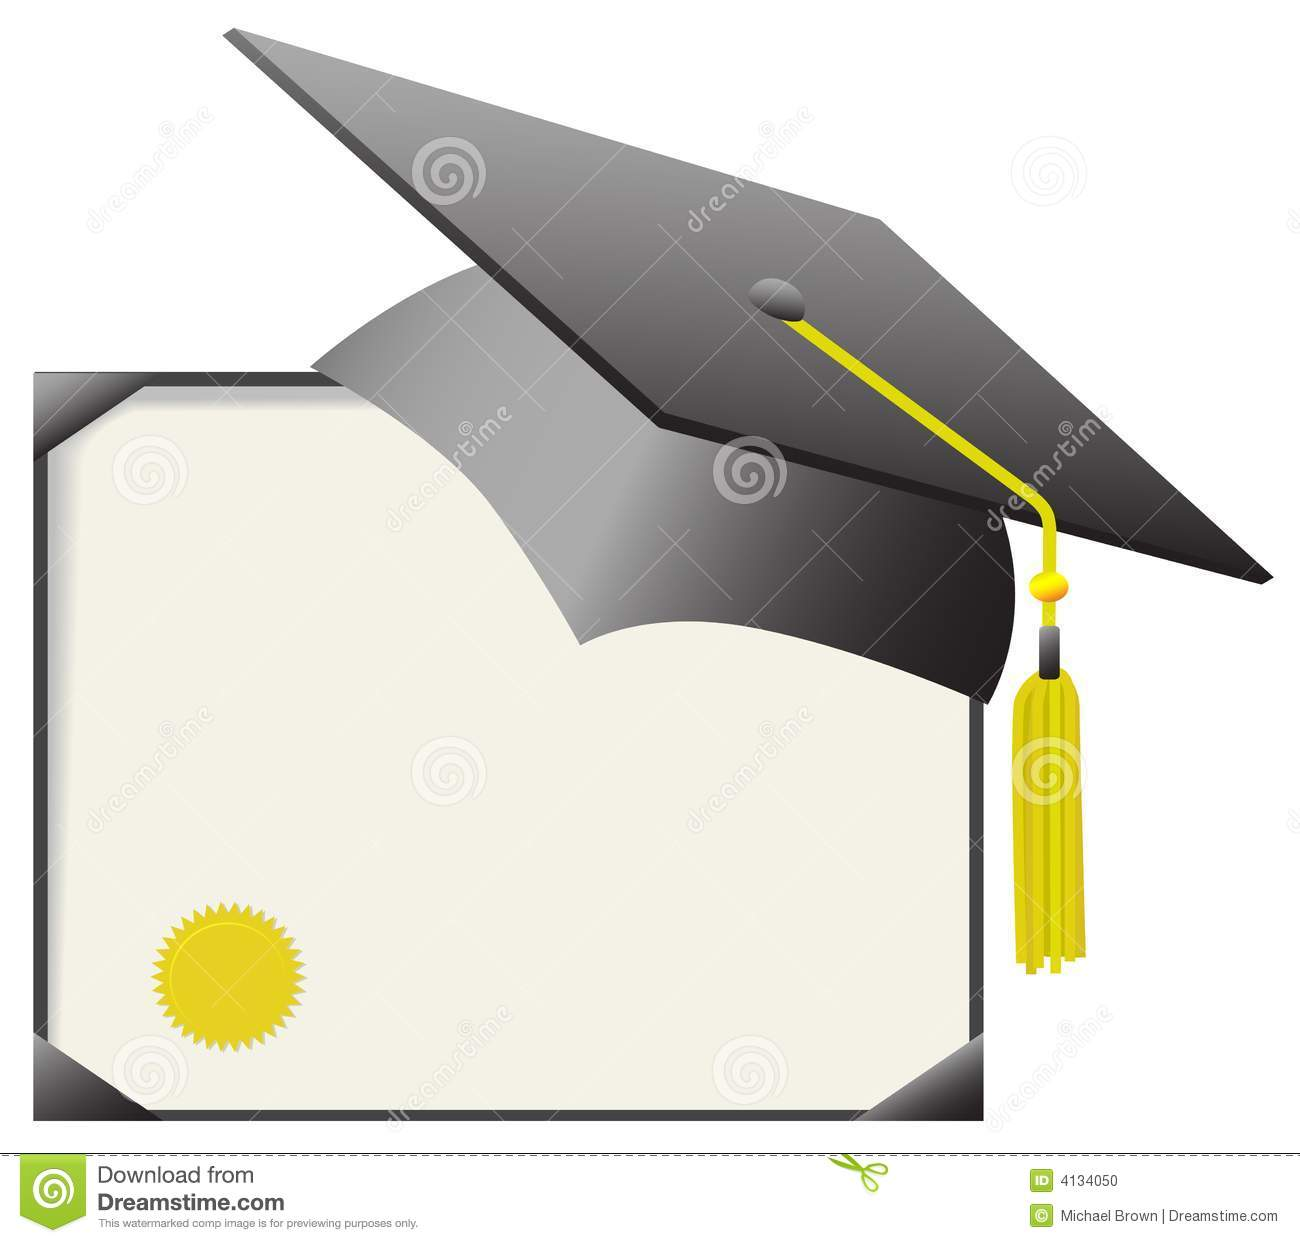 For cap & gown day: gray mortar board graduation cap & gold tassle ...